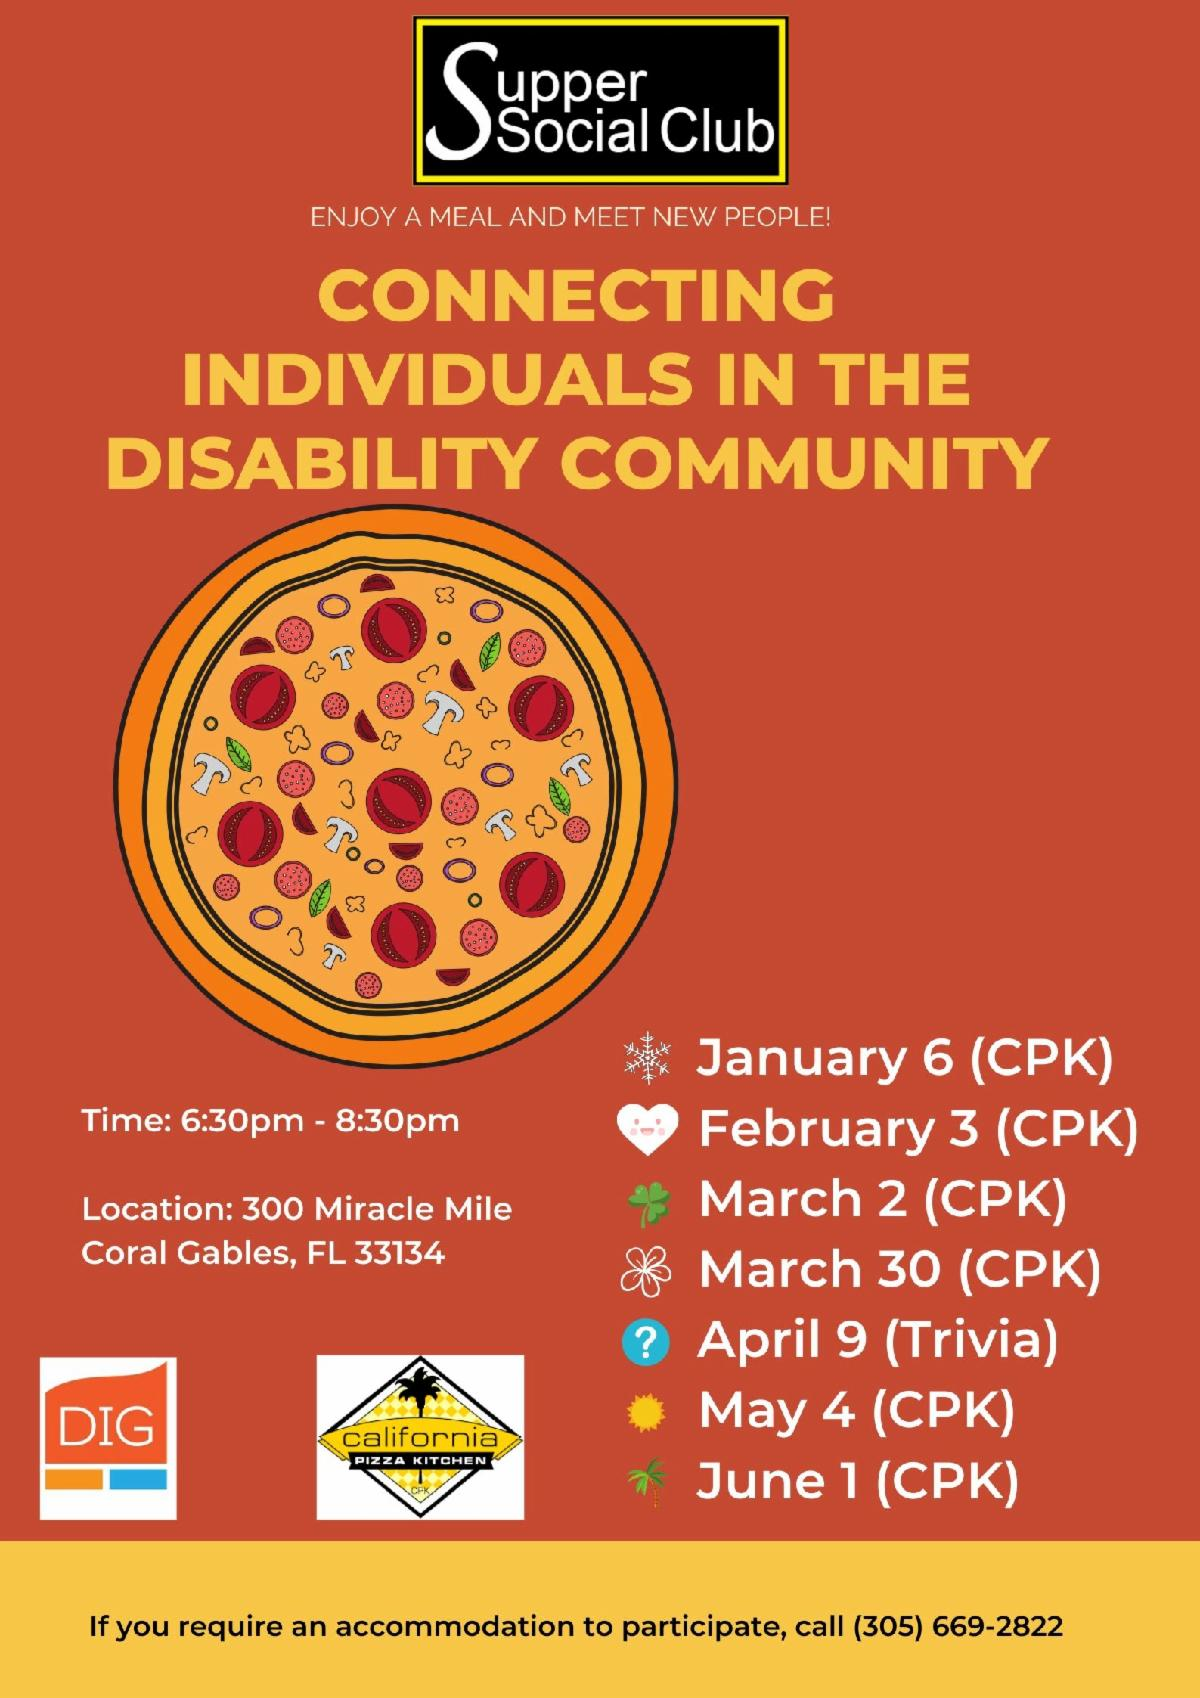 supper social flyer for jan through june of 2020 the flyer is red with a pizza in the middle and yellow writing that lists the dates of the event